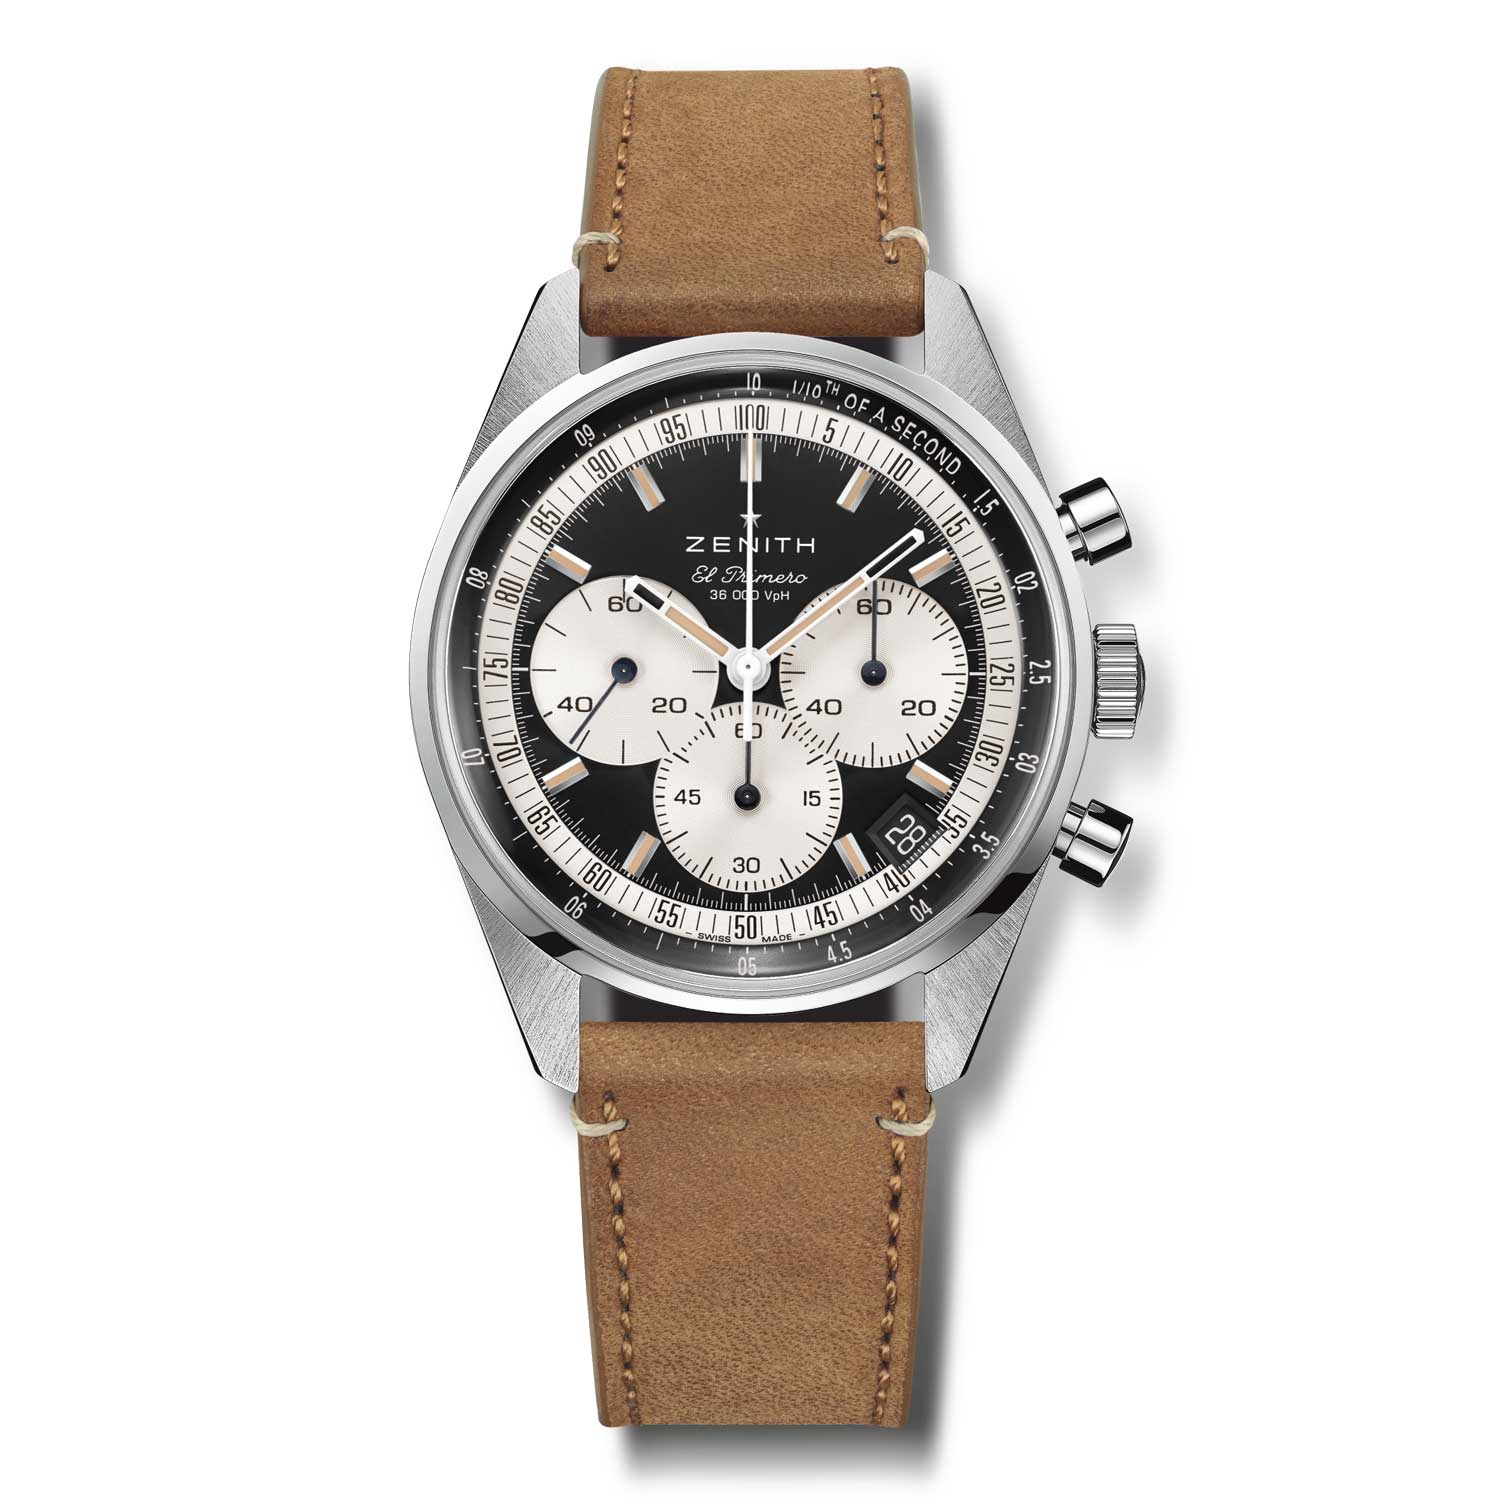 """The """"reverse panda"""" black dial with its sensitively done vintage-toned lume and thoroughly modern case is a truly impressive retro-modern chronograph."""